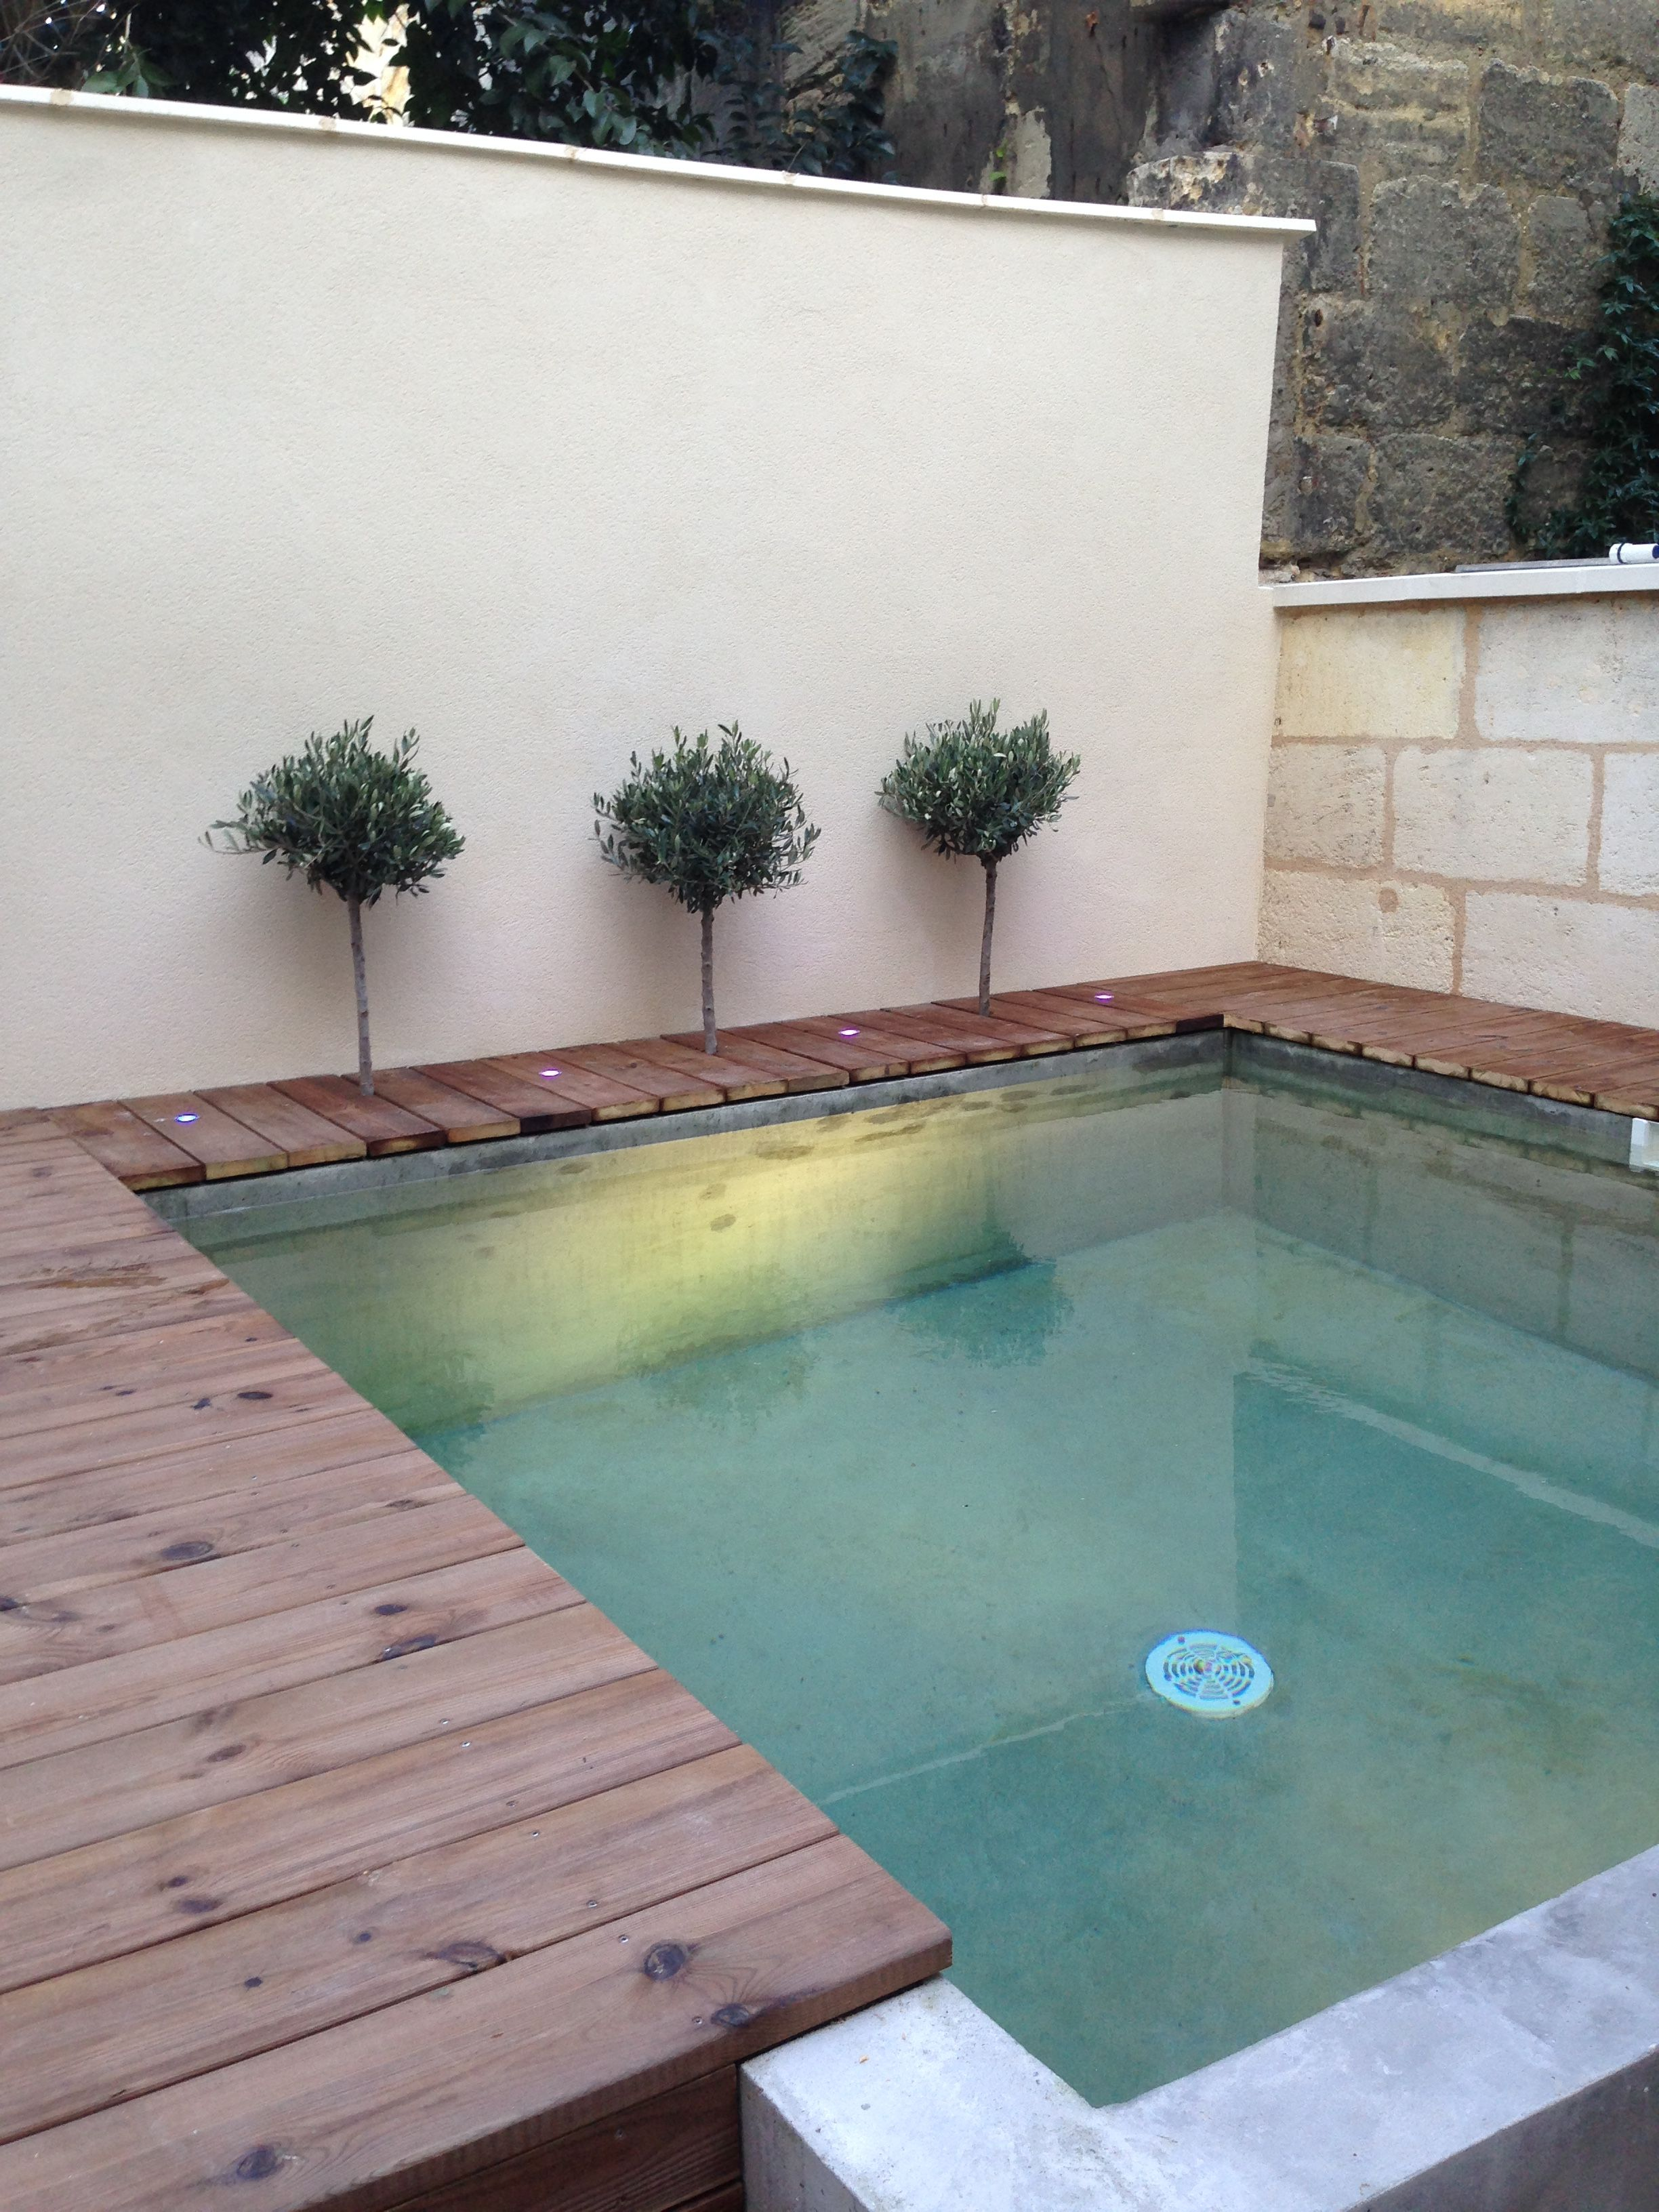 Small pool 3x3 outdoors in 2019 small backyard pools for Design pool klein